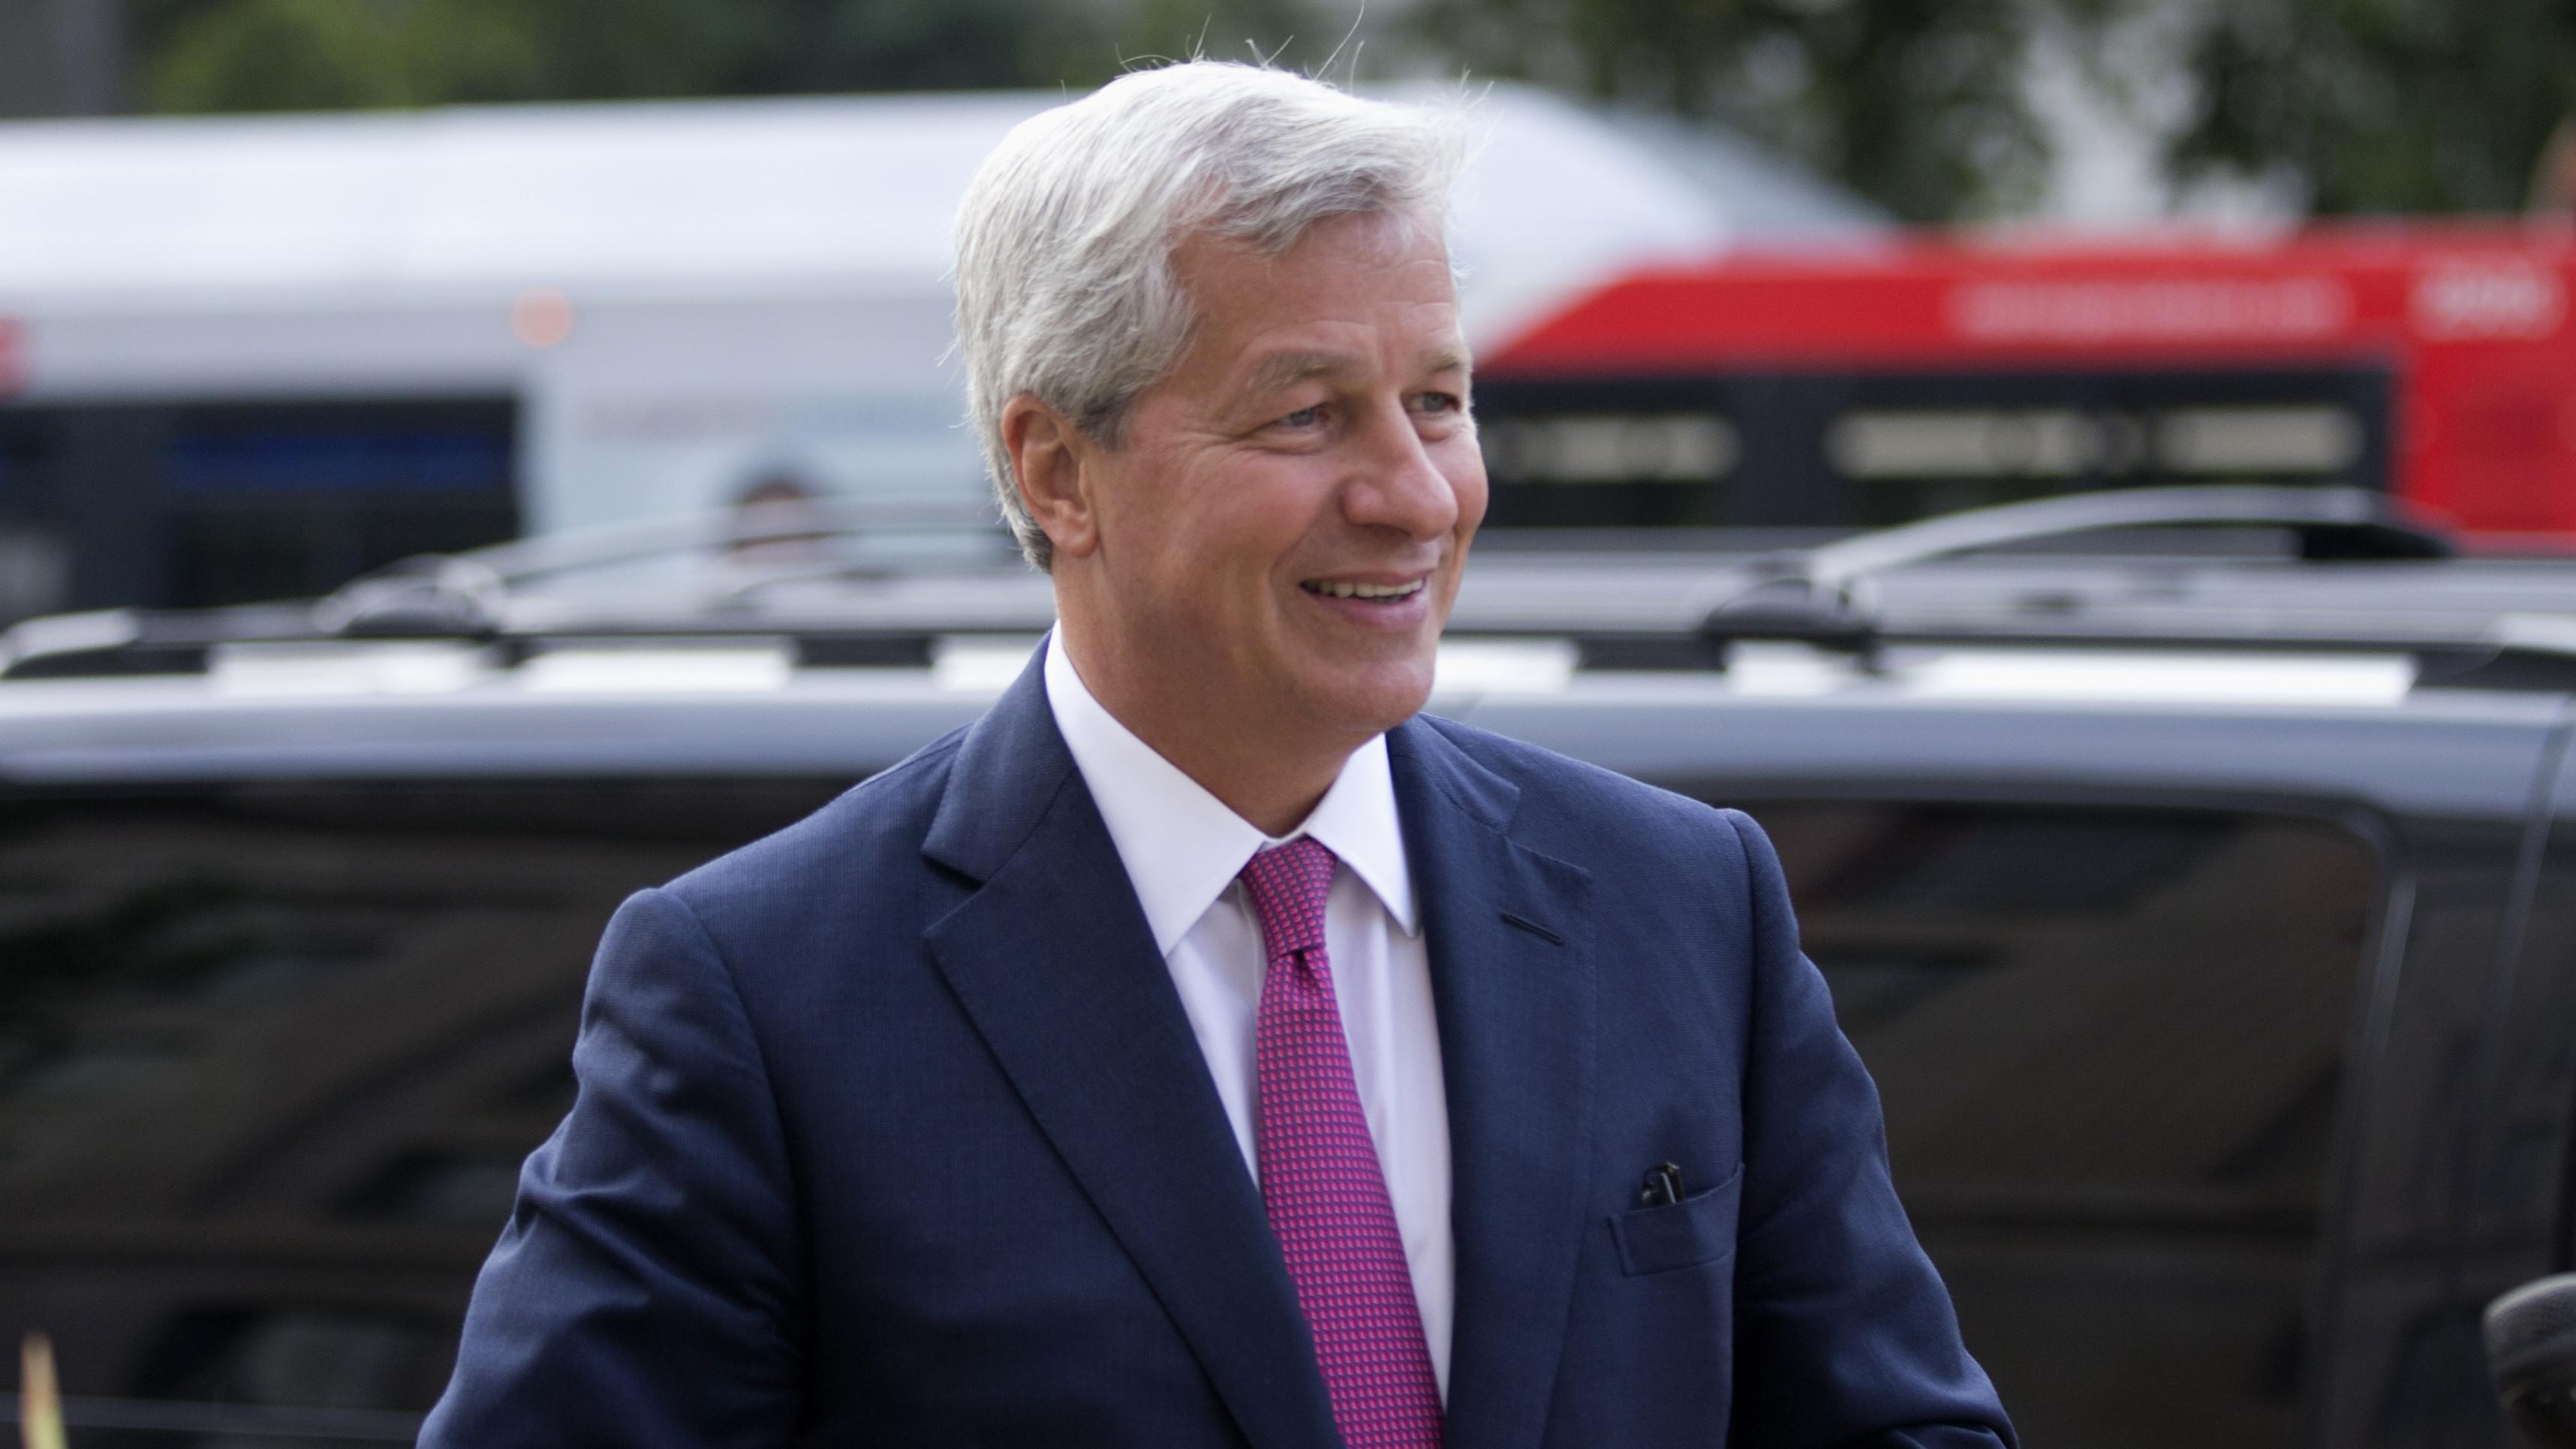 Jamie Dimon Gets 20 Million For His Worst Year As Ceo